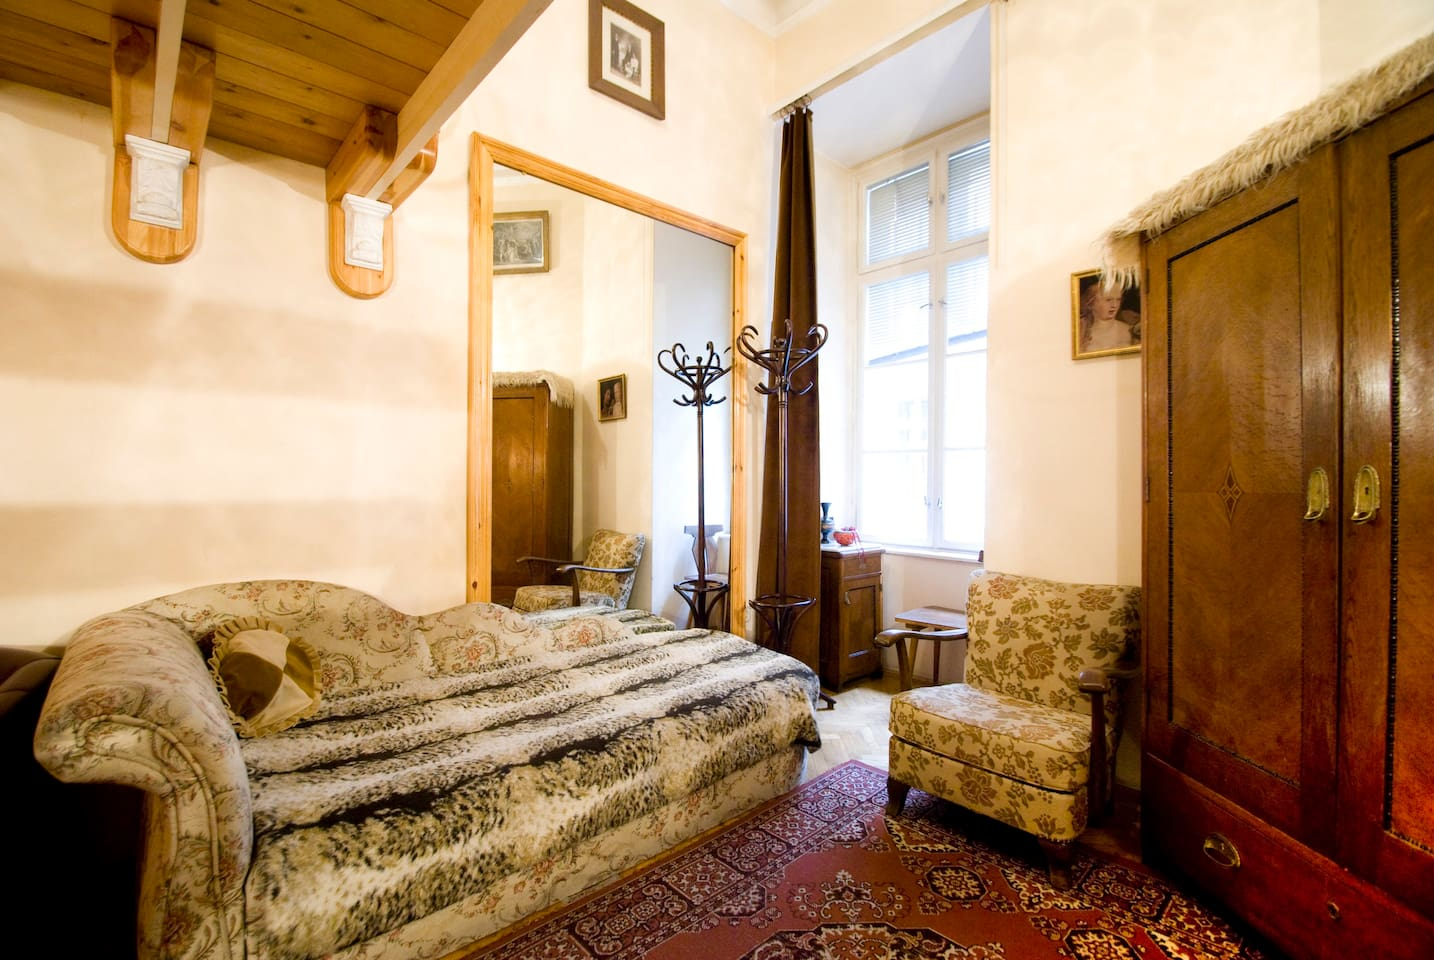 Lovely nest apartment at Vaci utca!